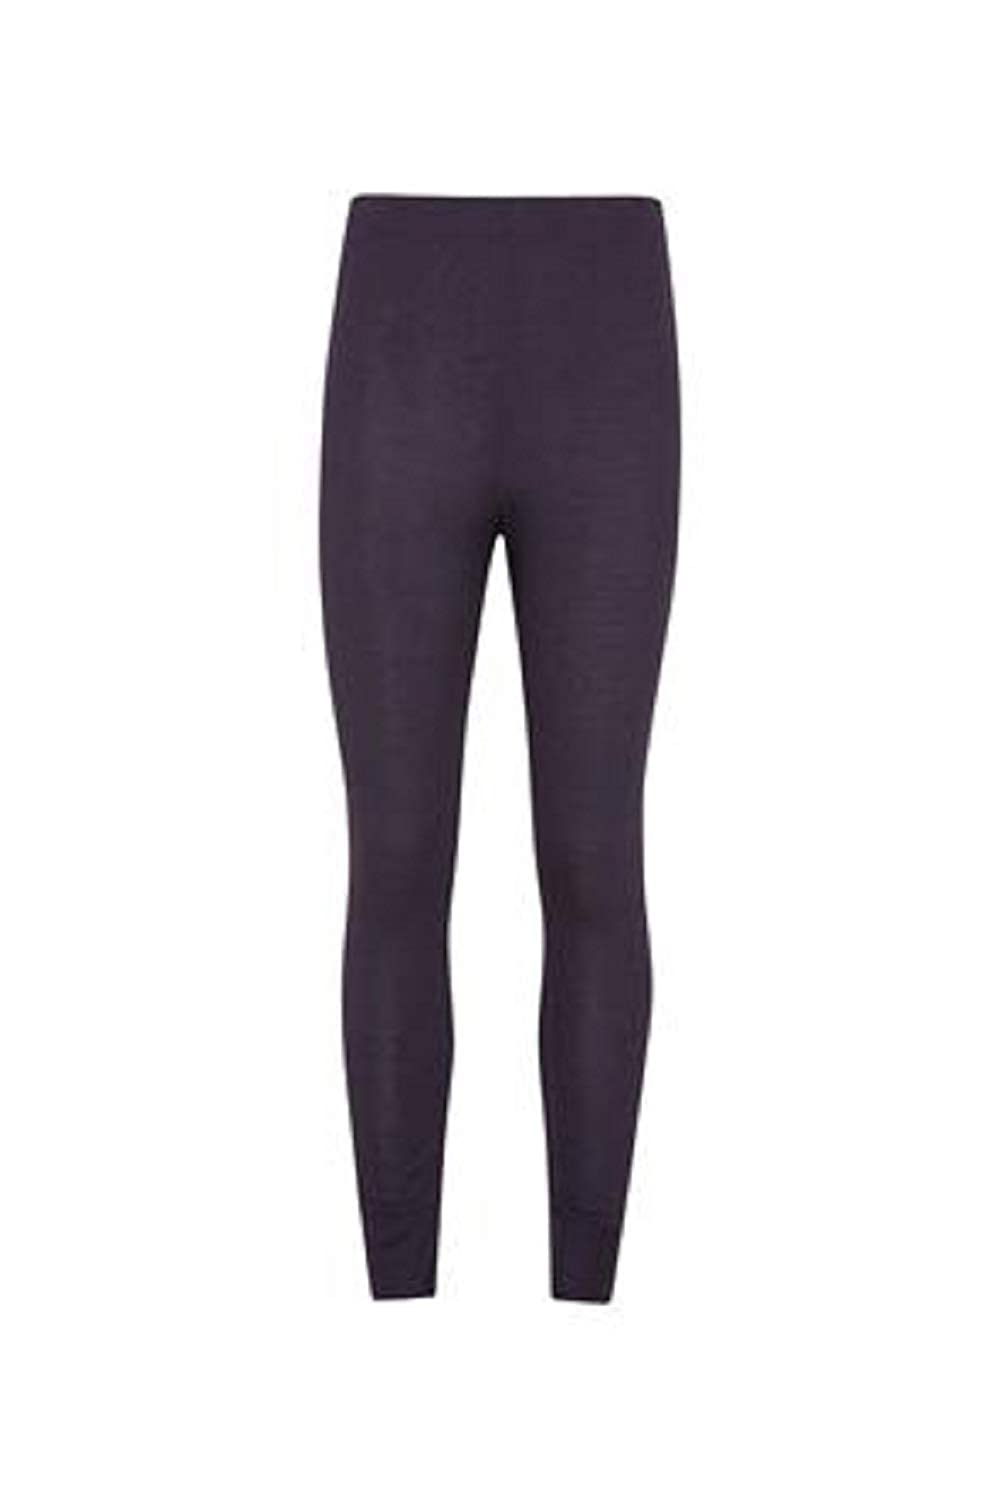 LADIES WOMEN THERMAL LEGGINGS FLEECE LINED WINTER THICK BLACK 4.9 TOG S-XL